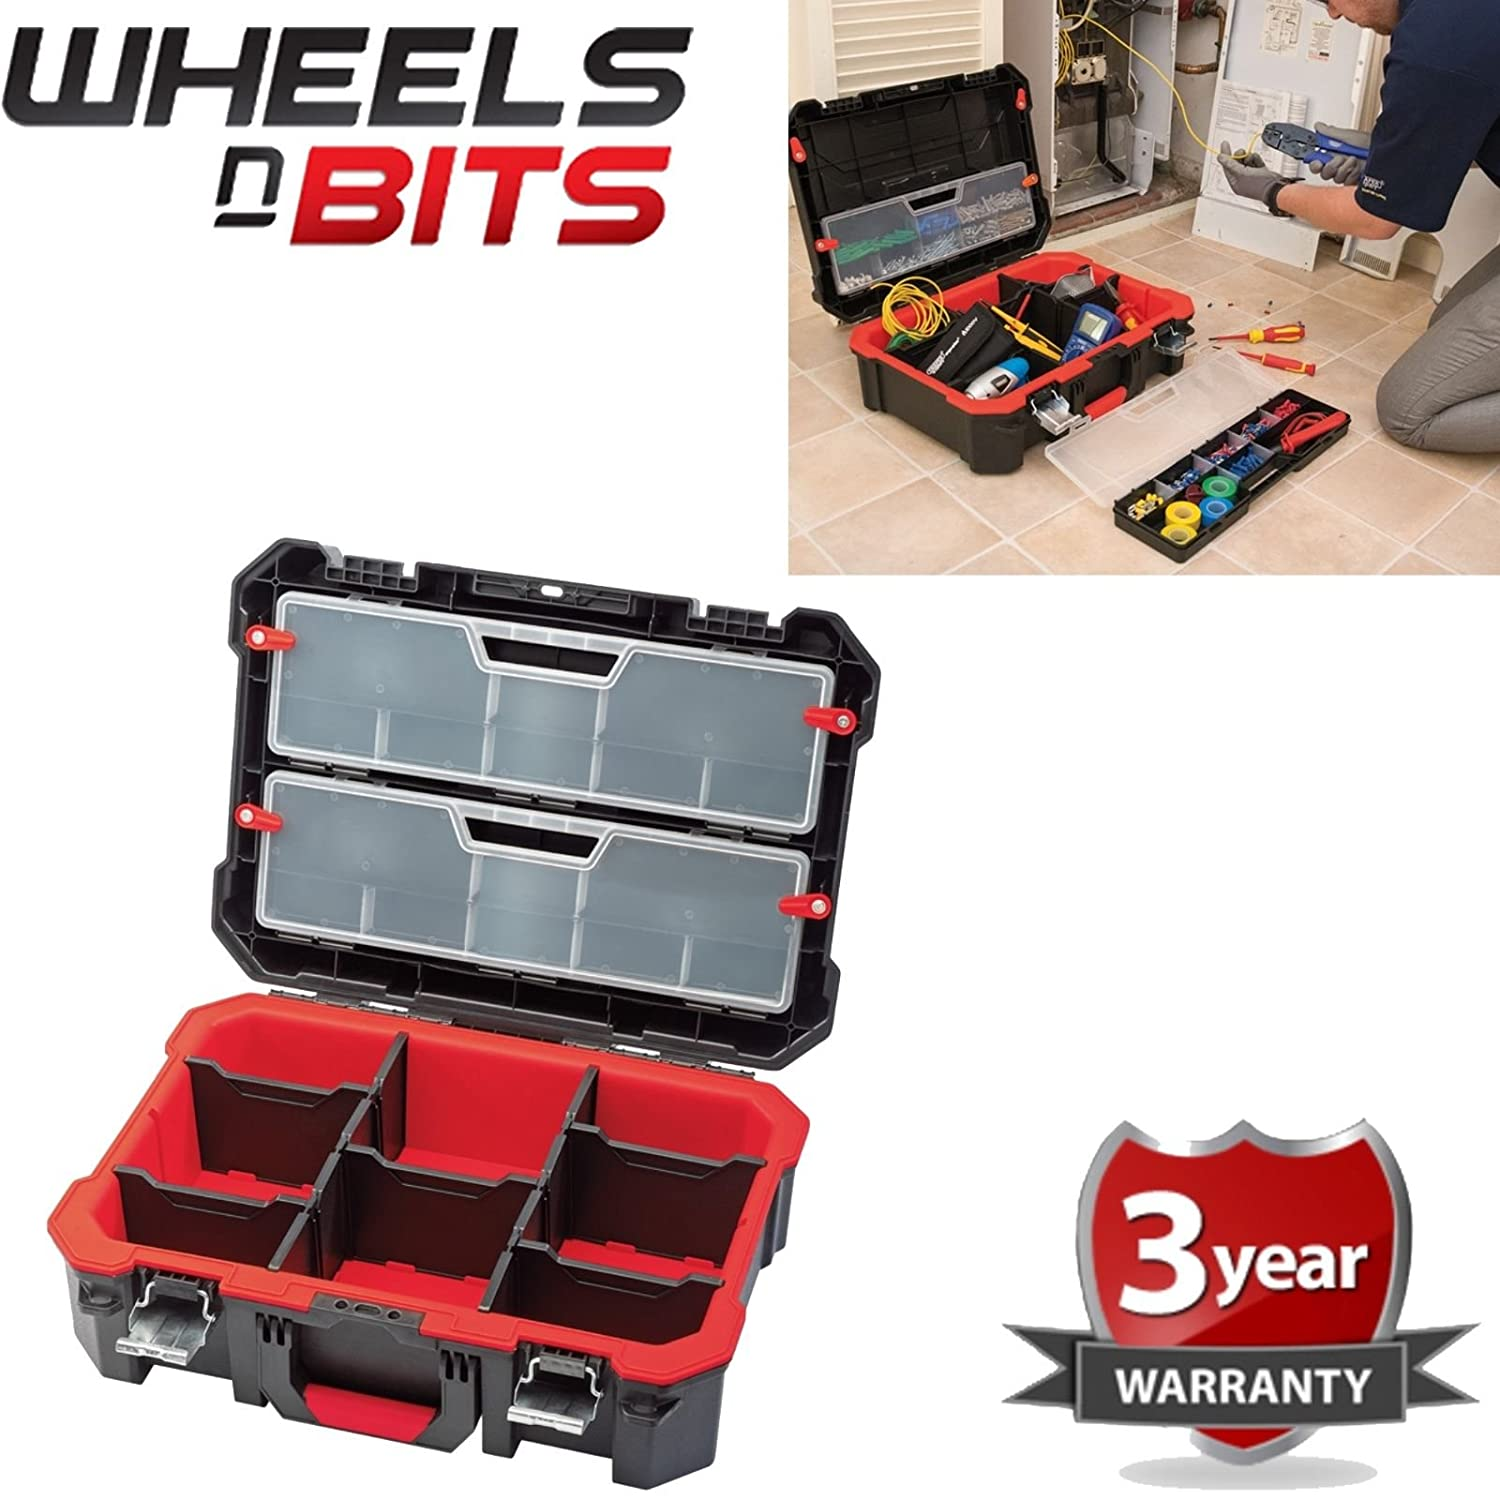 Wheels N Bits SUITCASE BOX TOOLS PROFESSIONAL HEAVY DUTY TECHNICIAN'S UTILITY CASE 20